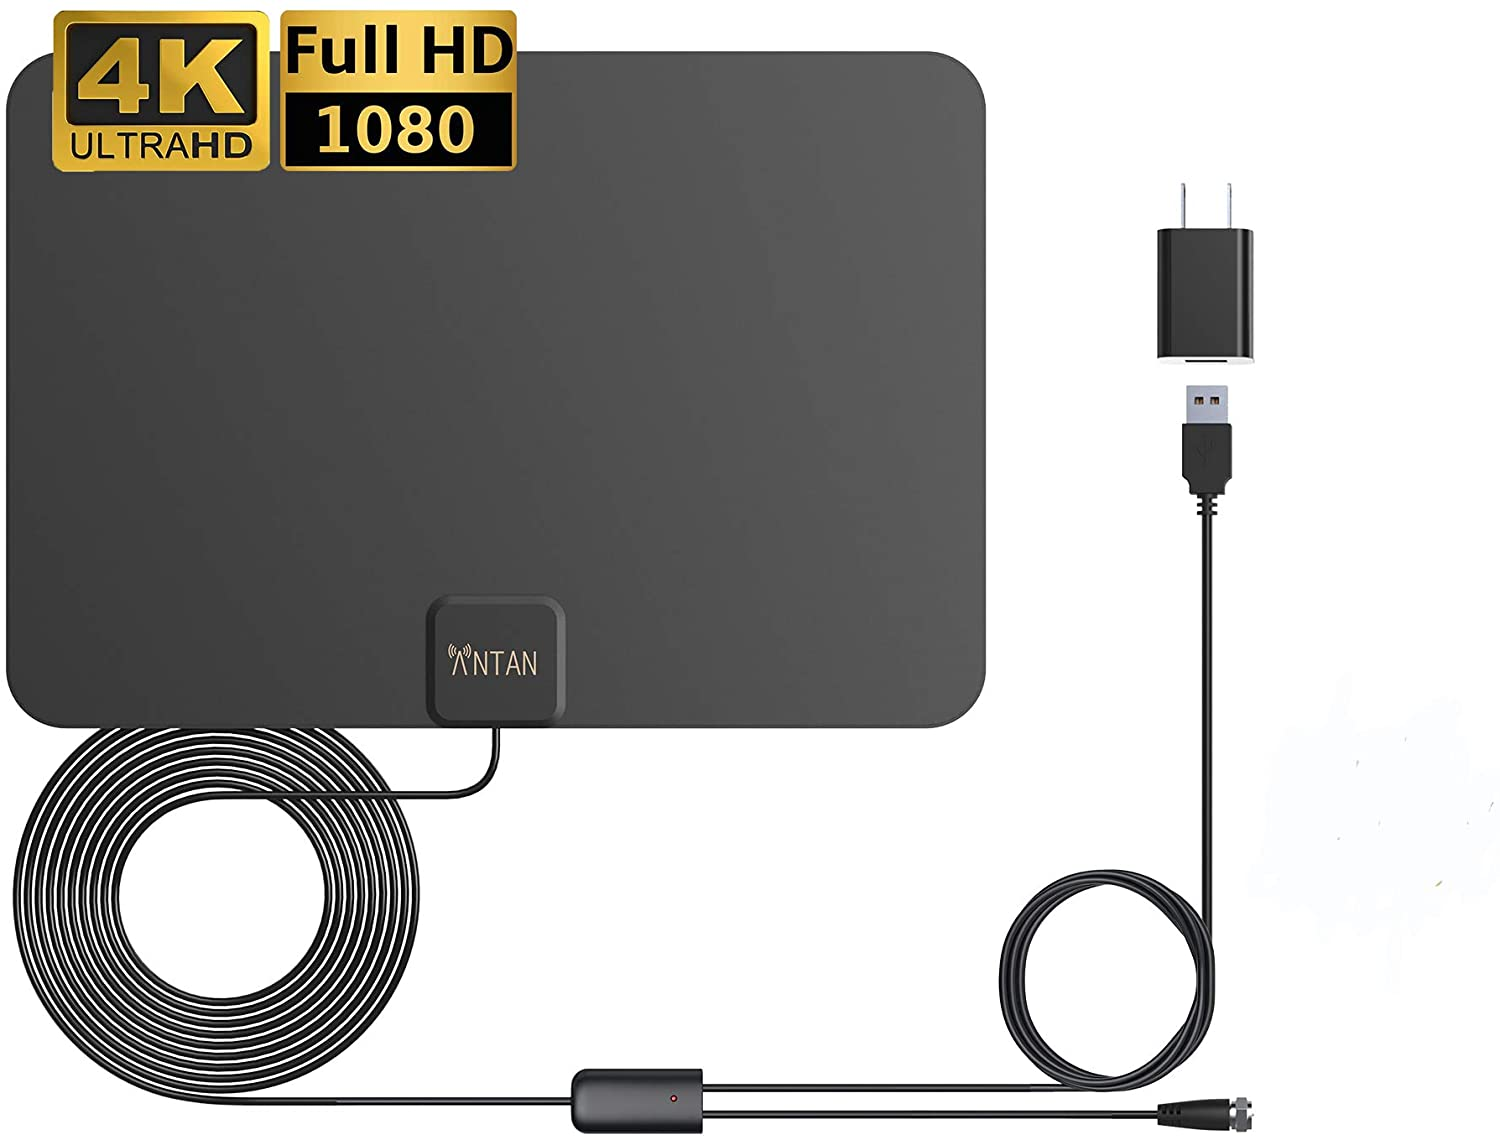 ANTAN Indoor Amplified HD TV Antenna Up to 45-65 Mile Range-Support 8K 4K 1080p VHF UHF Freeview Television Local Channels for All Indoor TVs with Longer 16.5ft Coax Cable